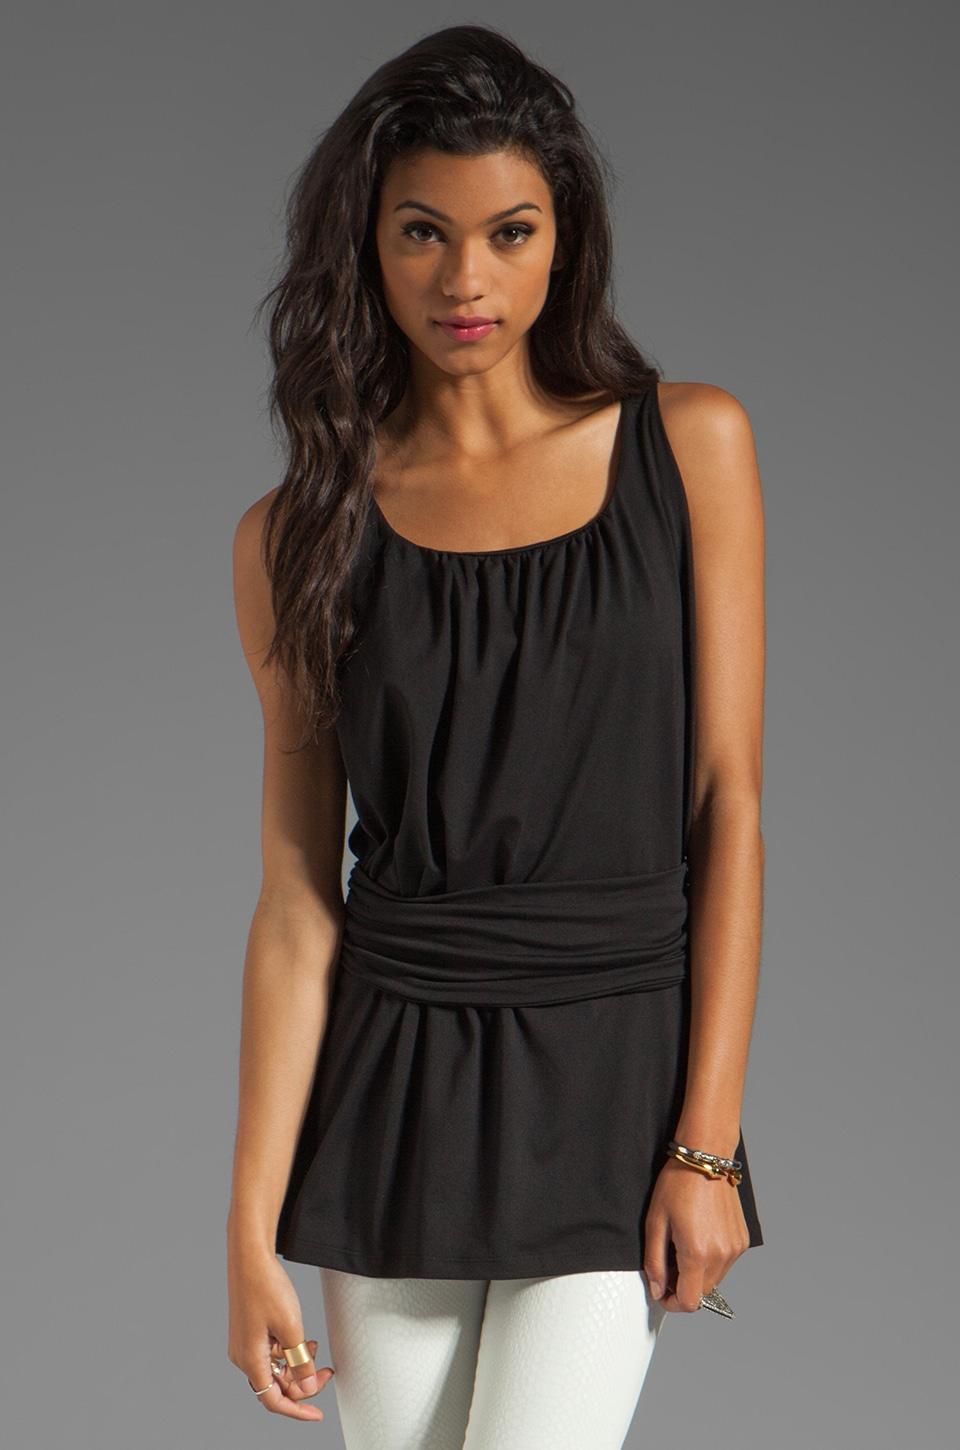 Susana Monaco Light Supplex Kato Tank in Black